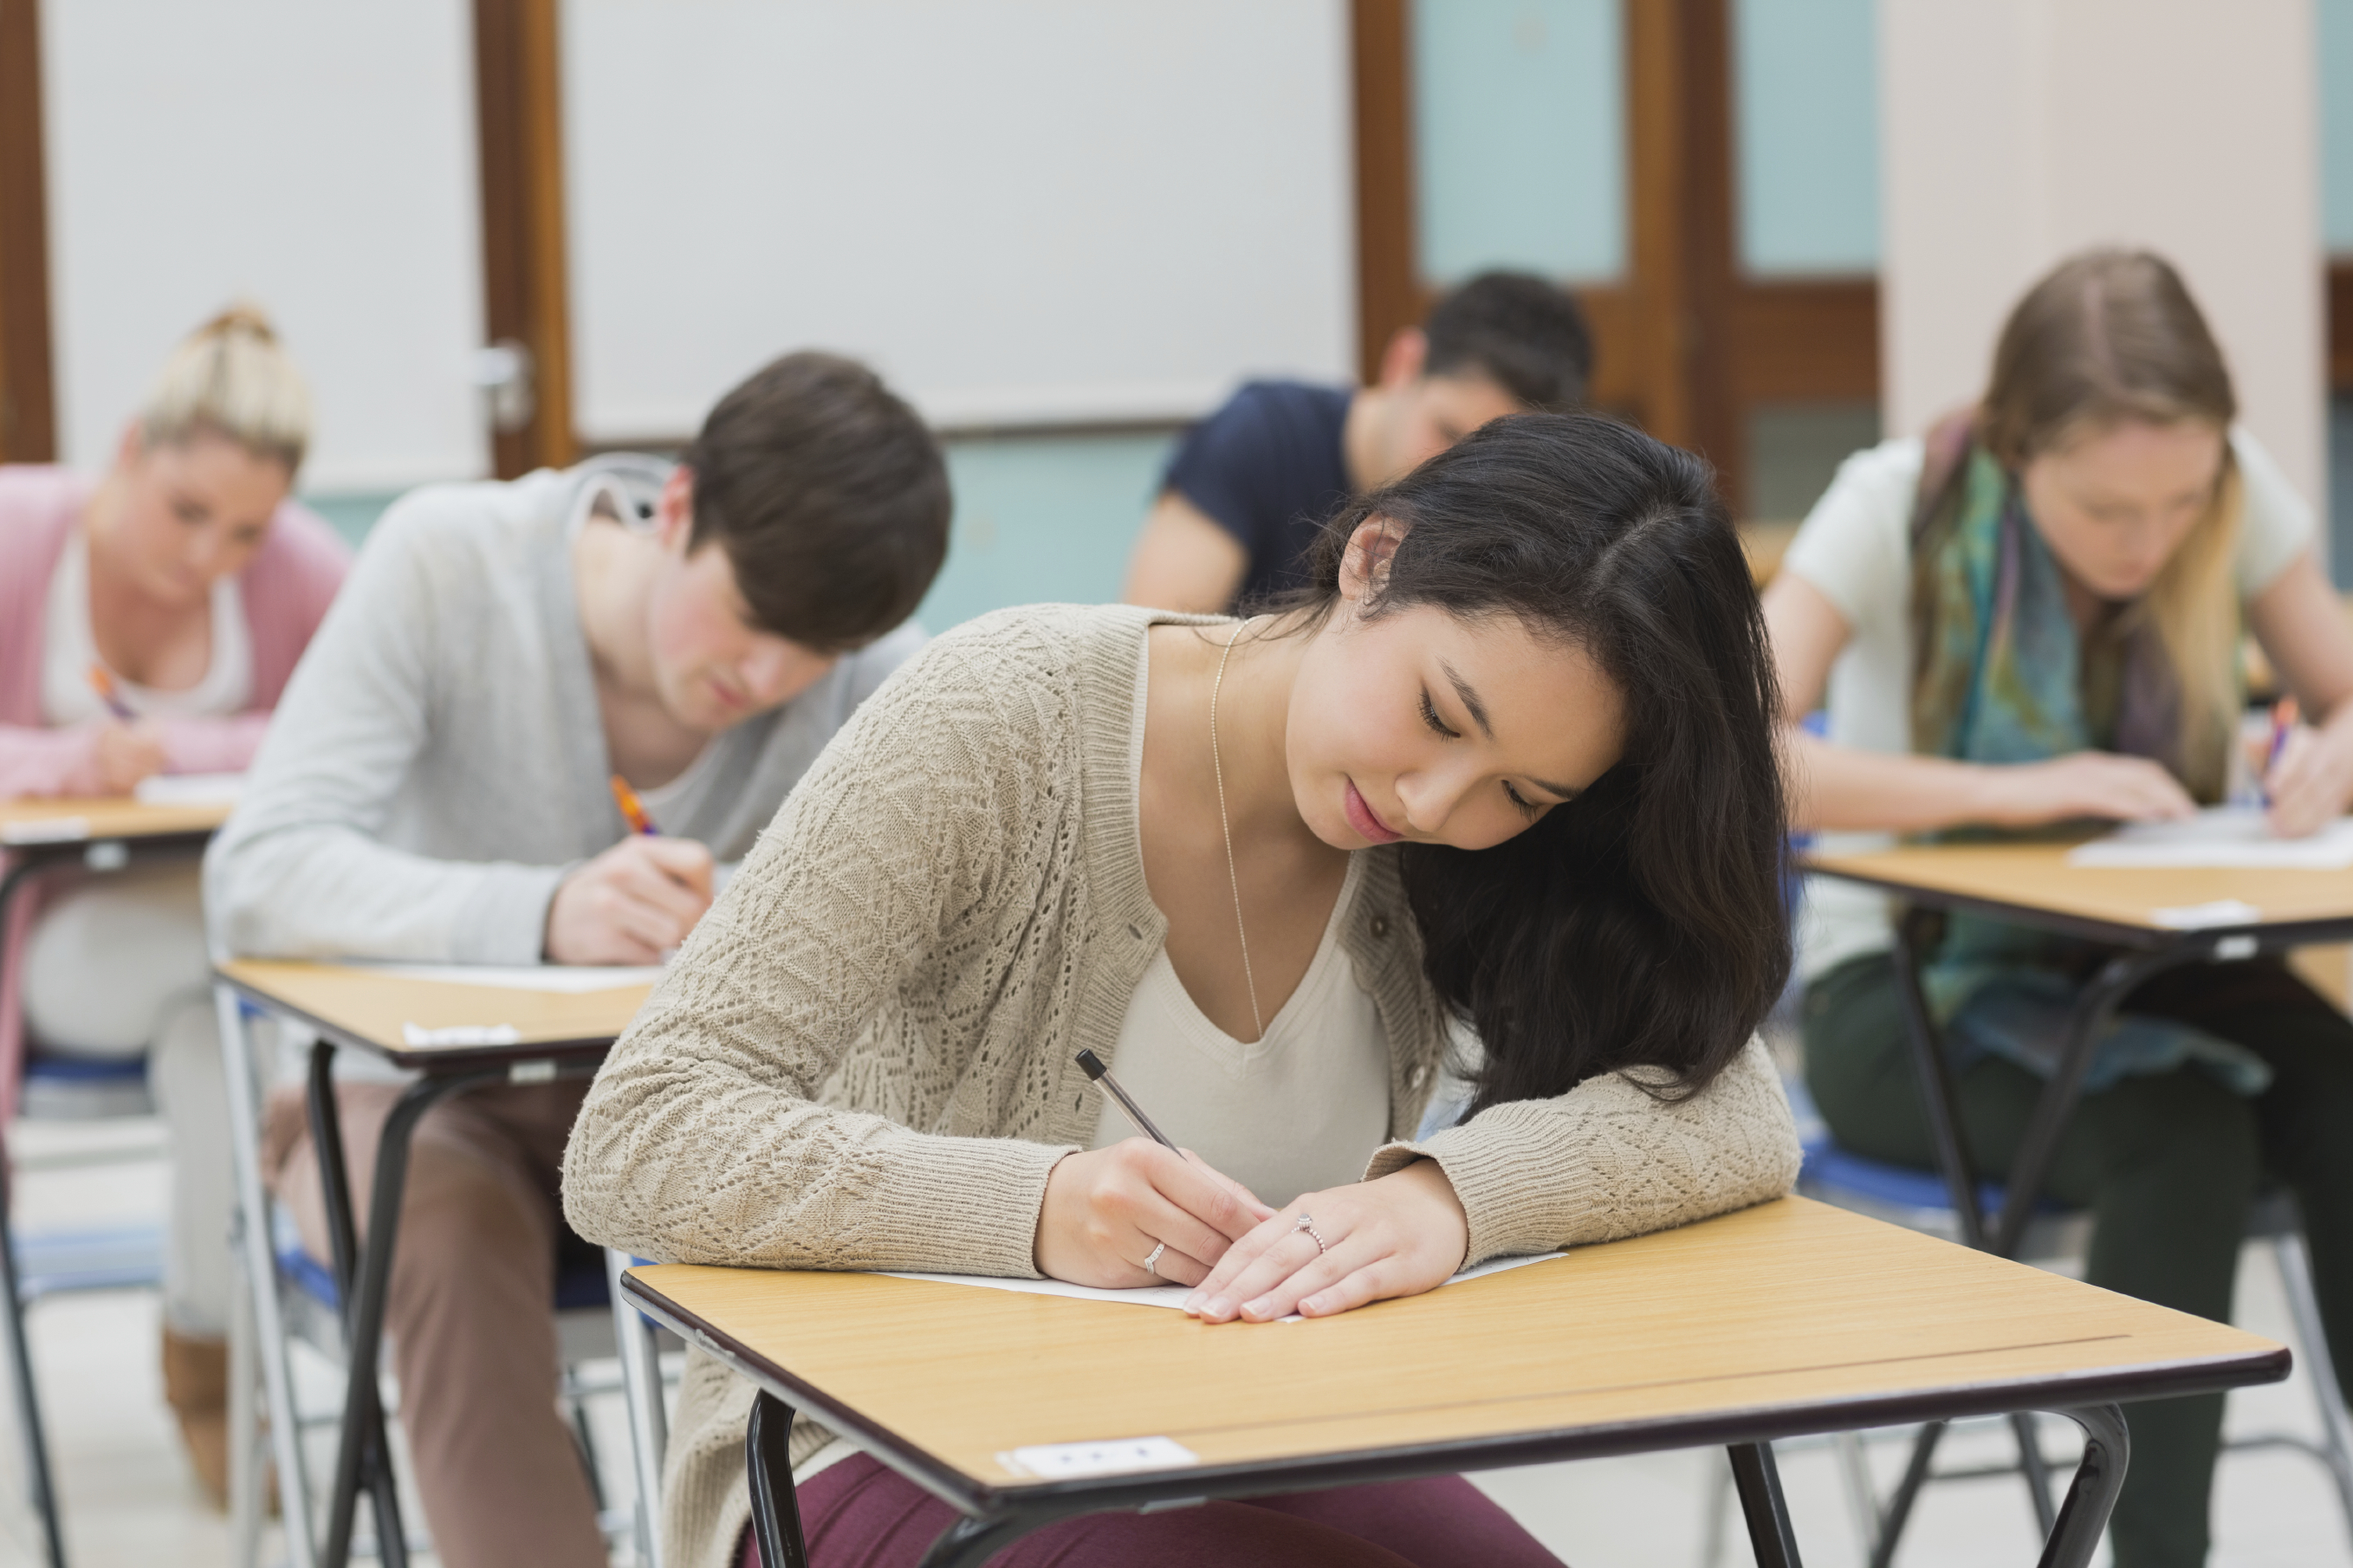 Students in a classroom sitting at their desks while doing a test